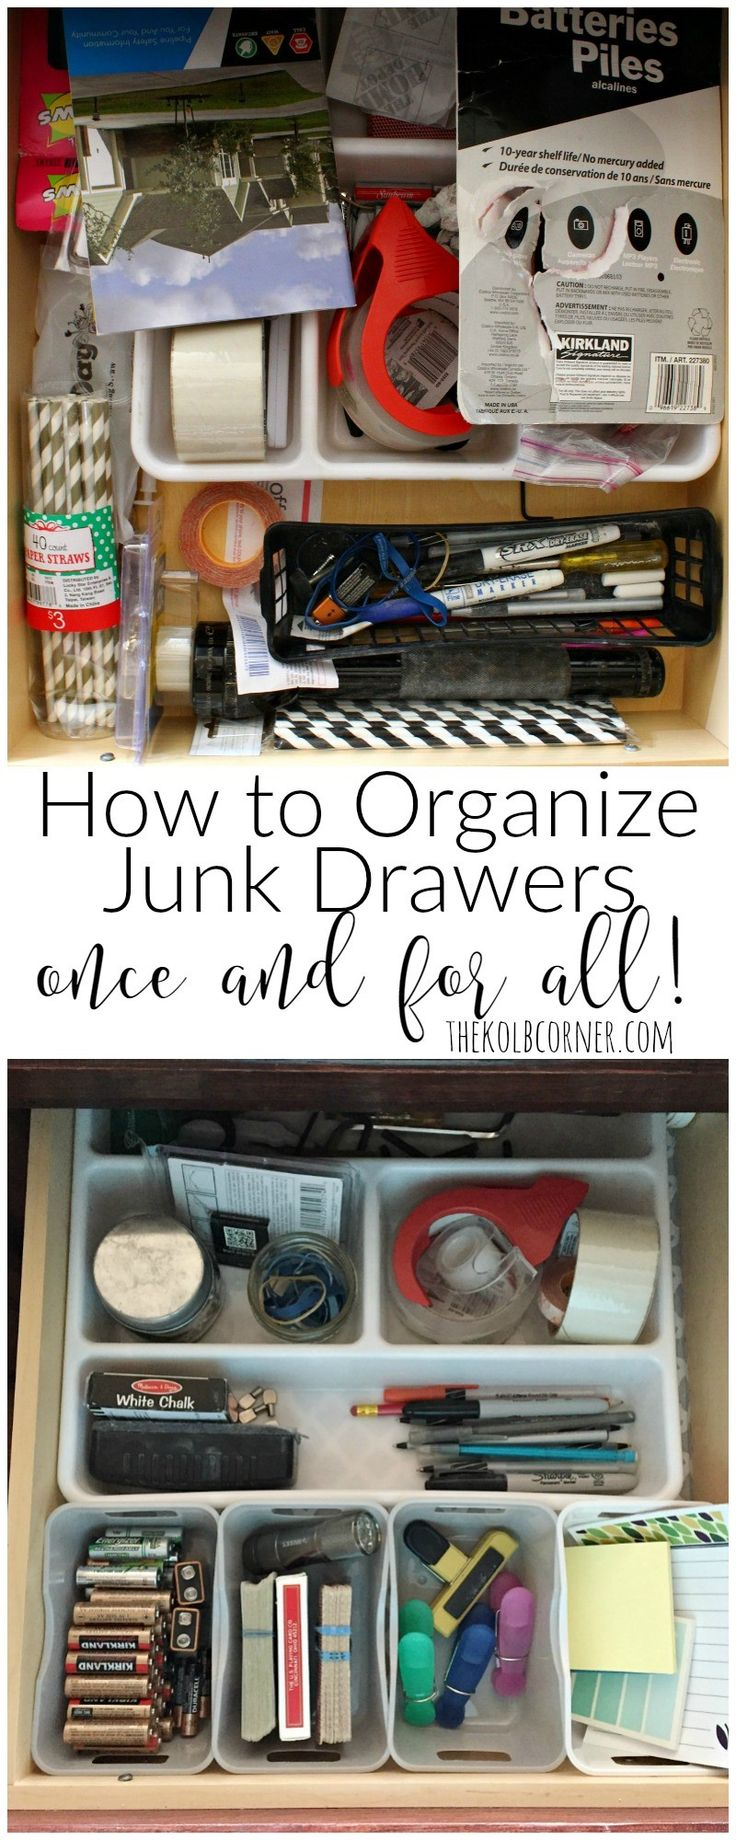 best way to organize kitchen drawers 25 best ideas about junk drawer organizing on 9240